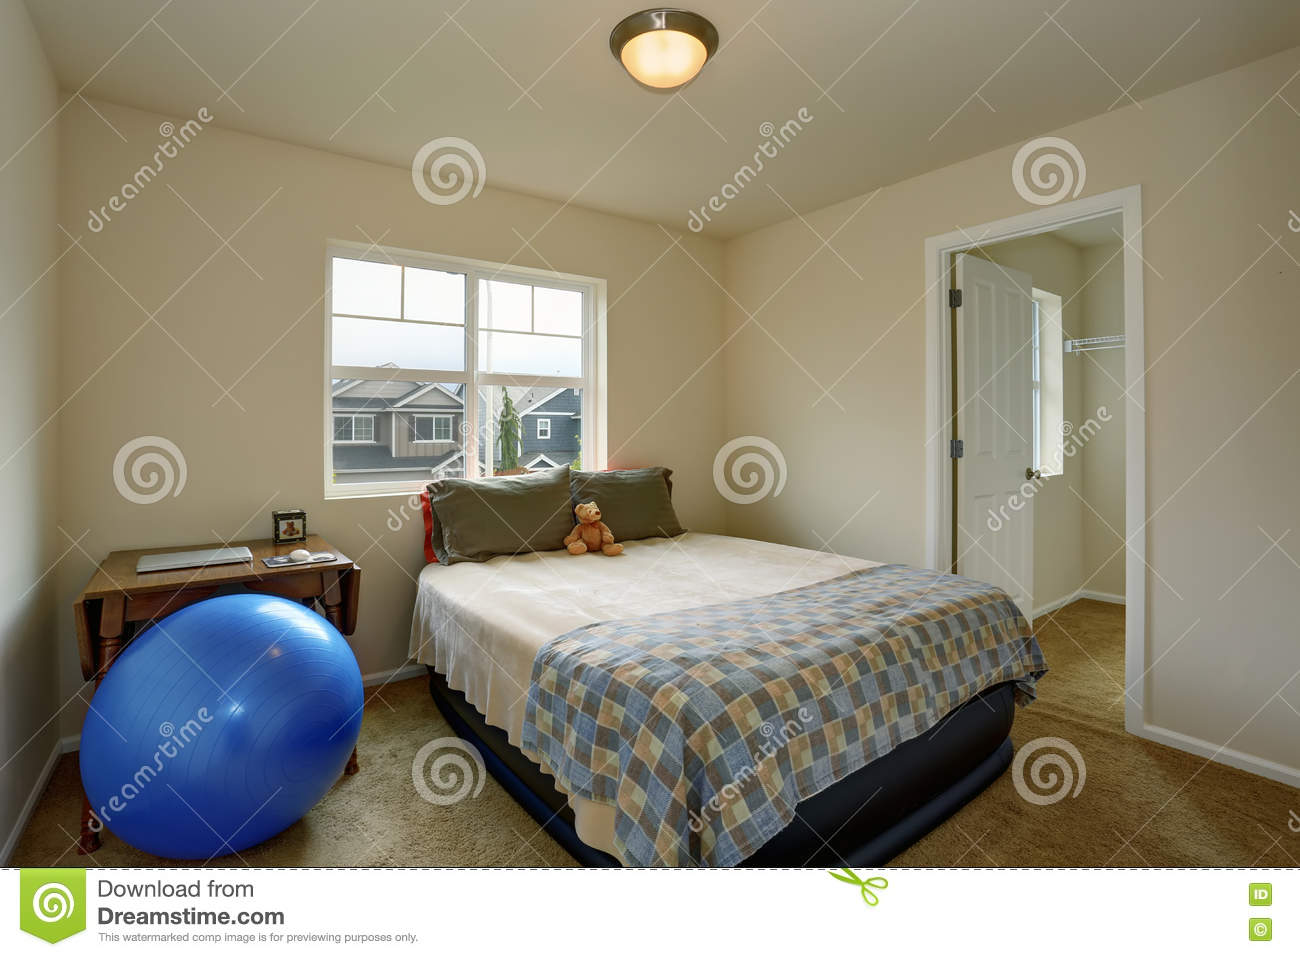 Small Kids Bedroom With Table, Blue Ball And Small Green Bed ...